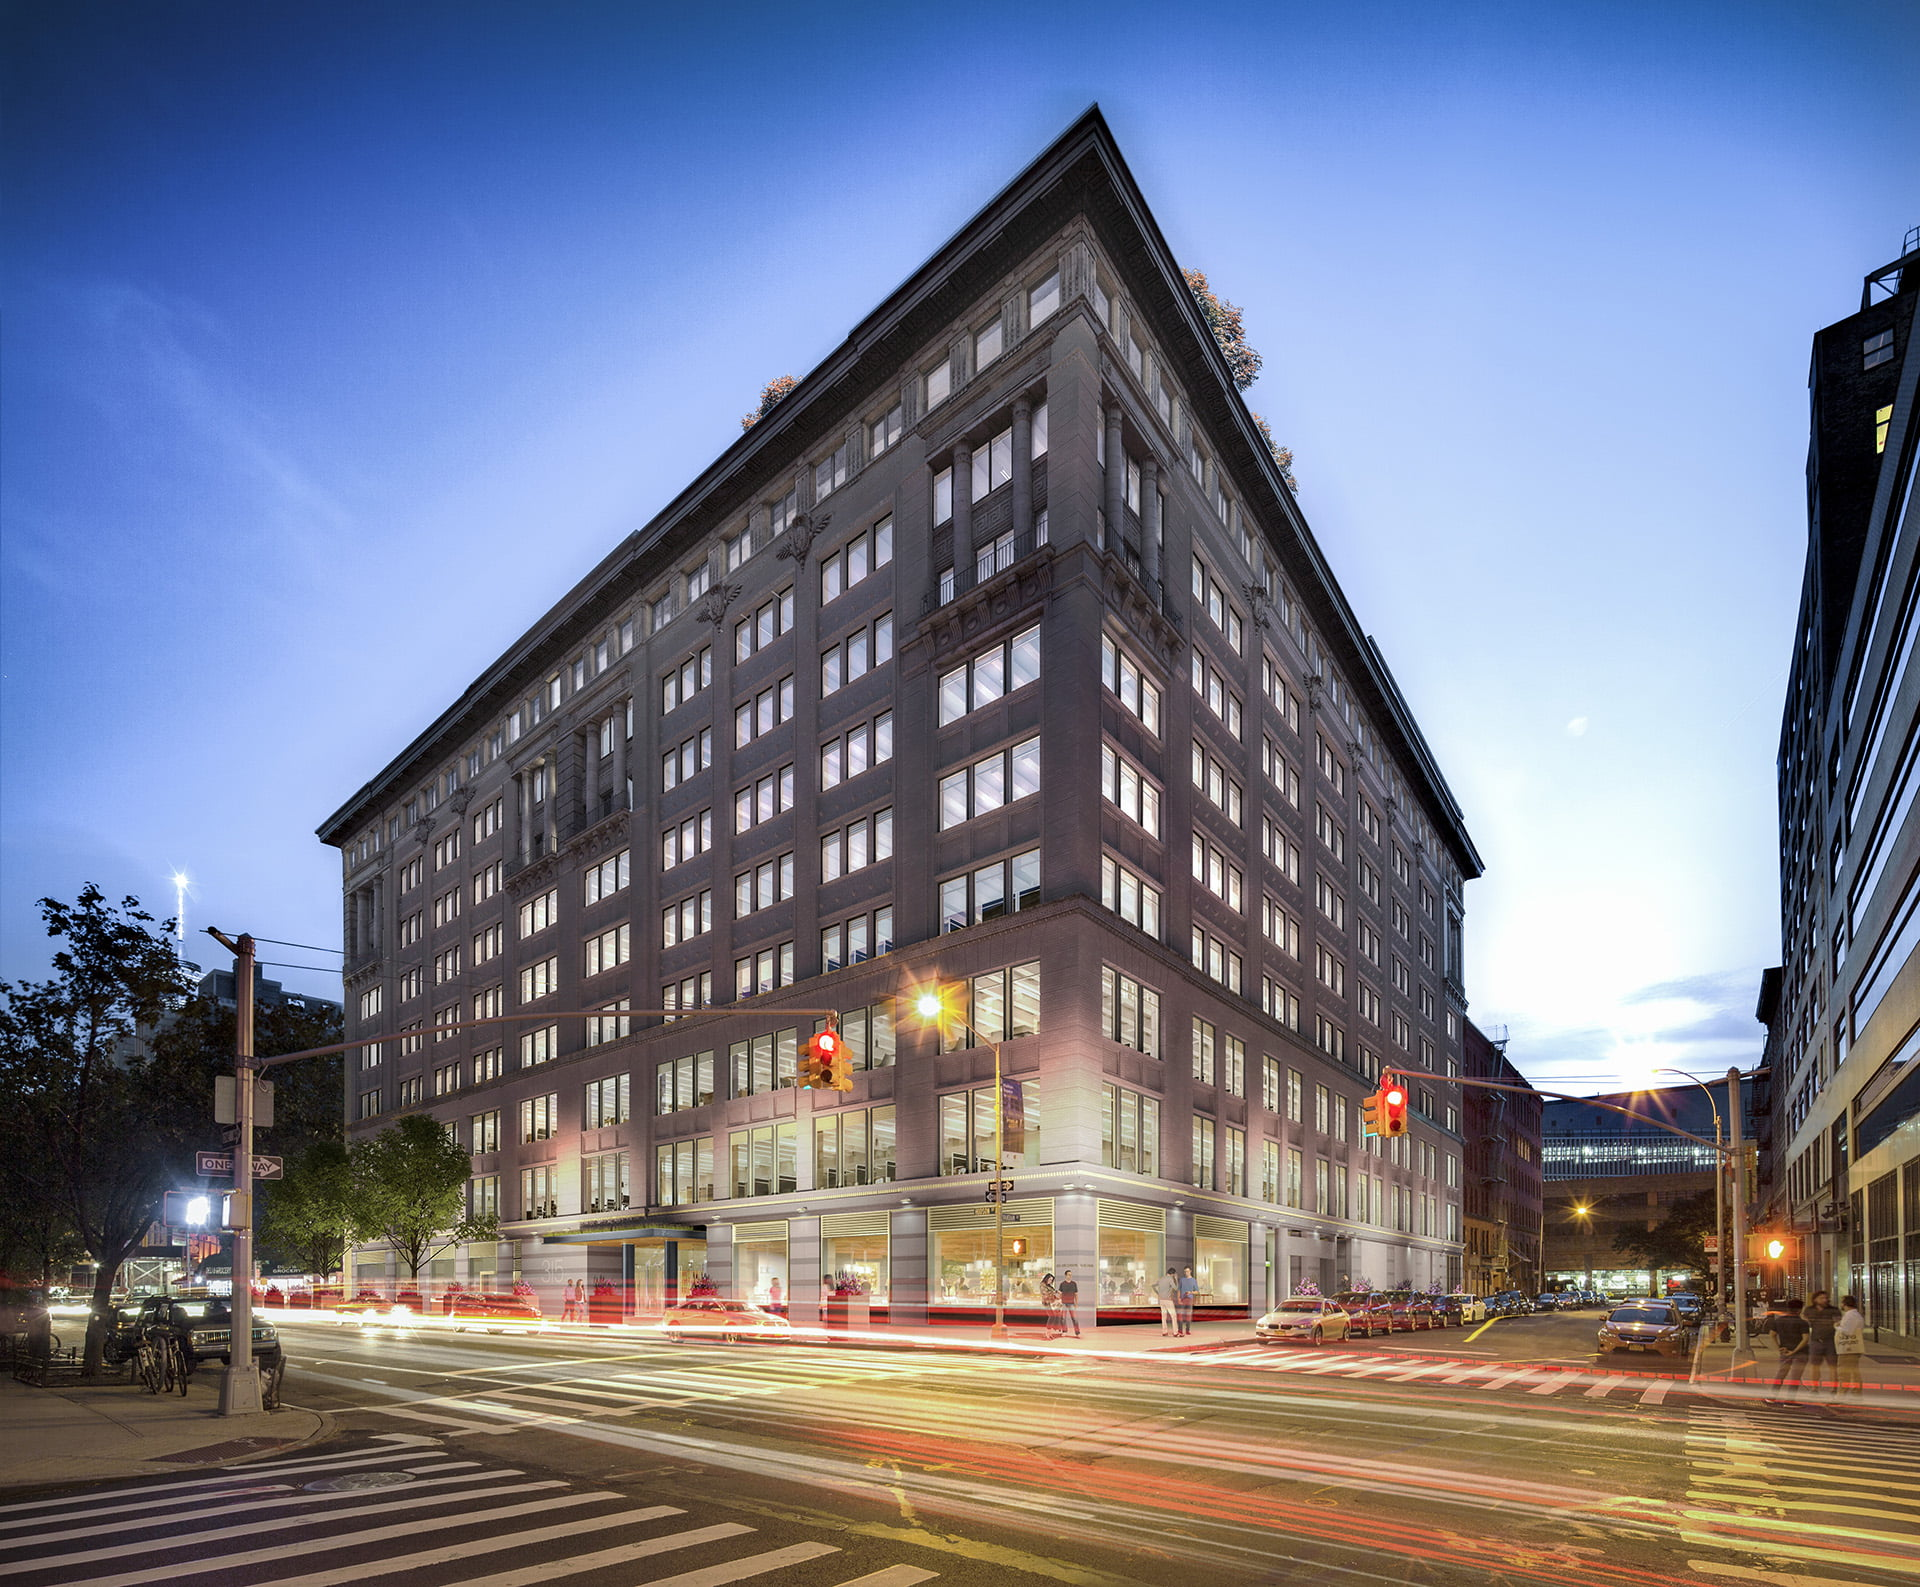 Night view of entire building at 315 Hudson Street